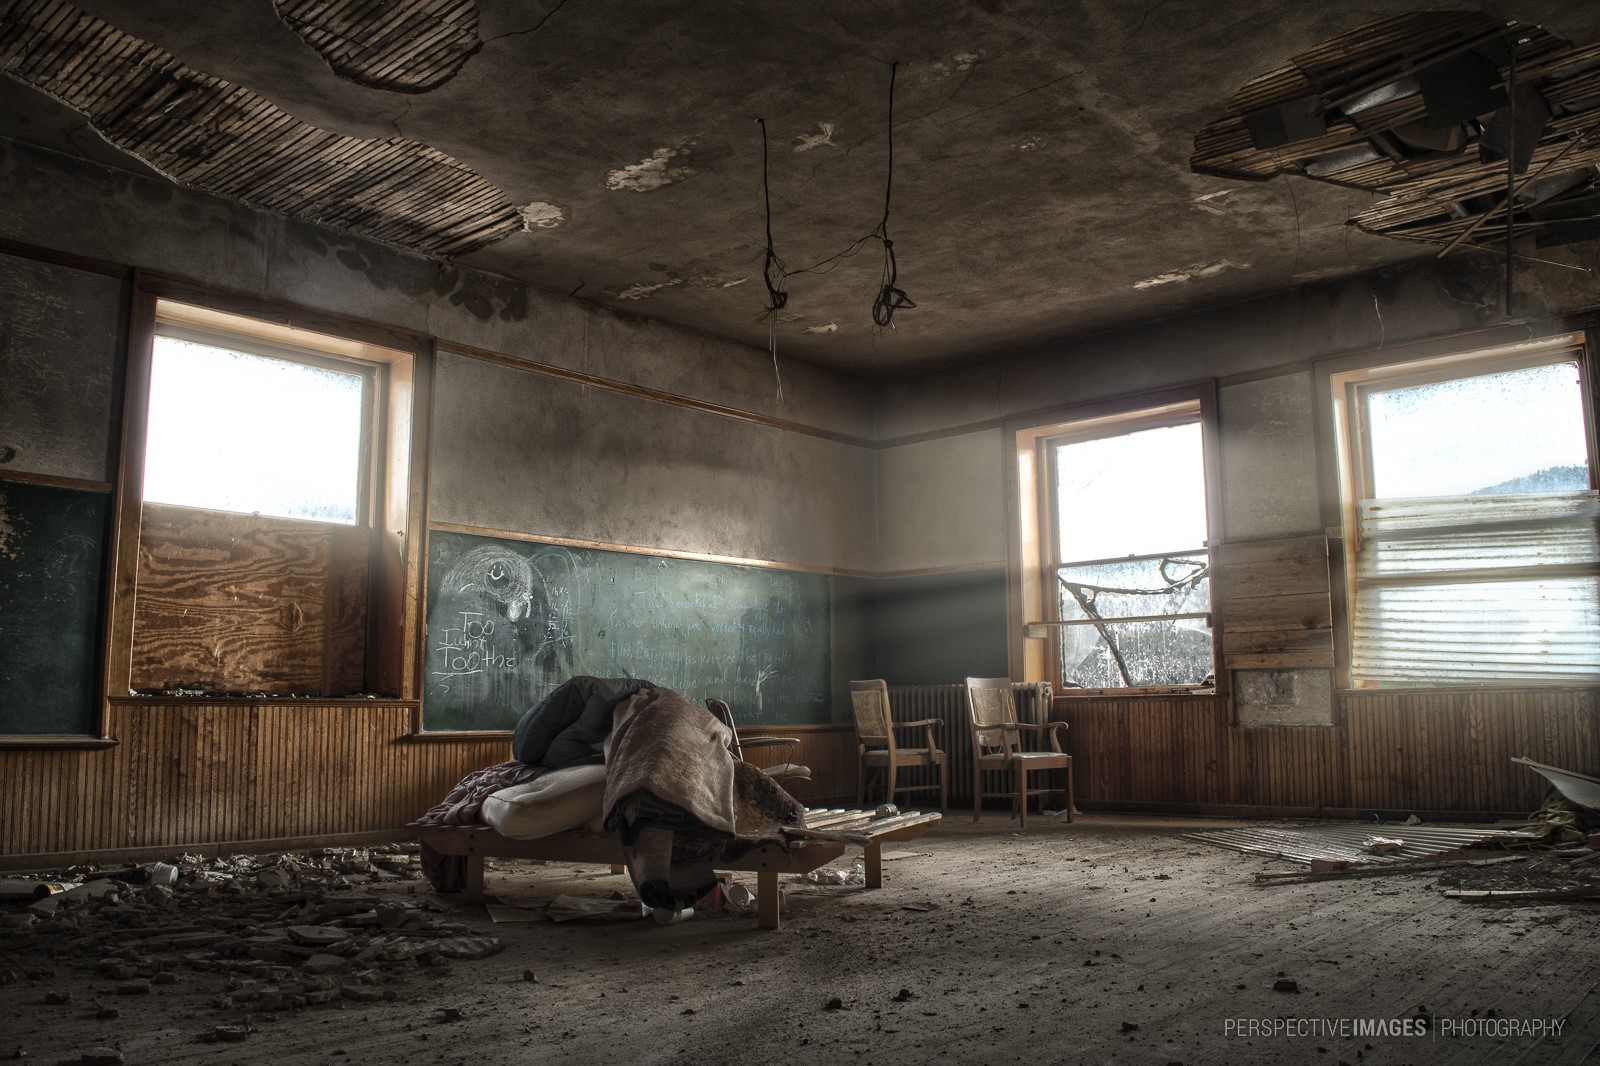 Shine On - Crumbling ceiling plaster falls in chunks at an abandoned school house.